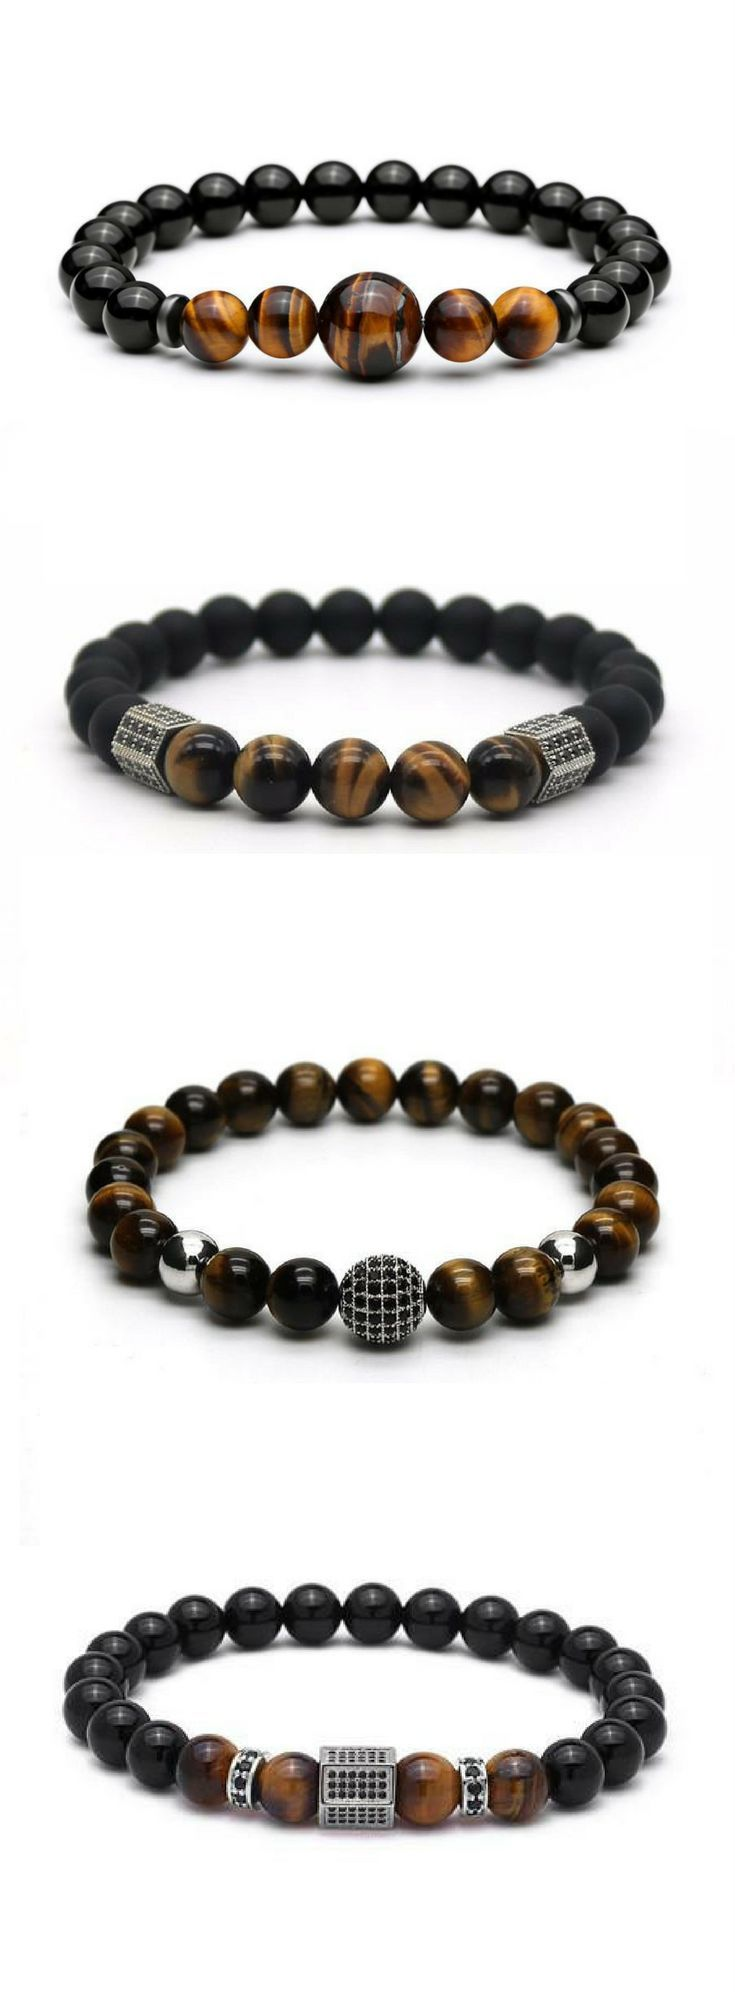 Mens Beaded Bracelets. Sale & Free worldwide shipping.